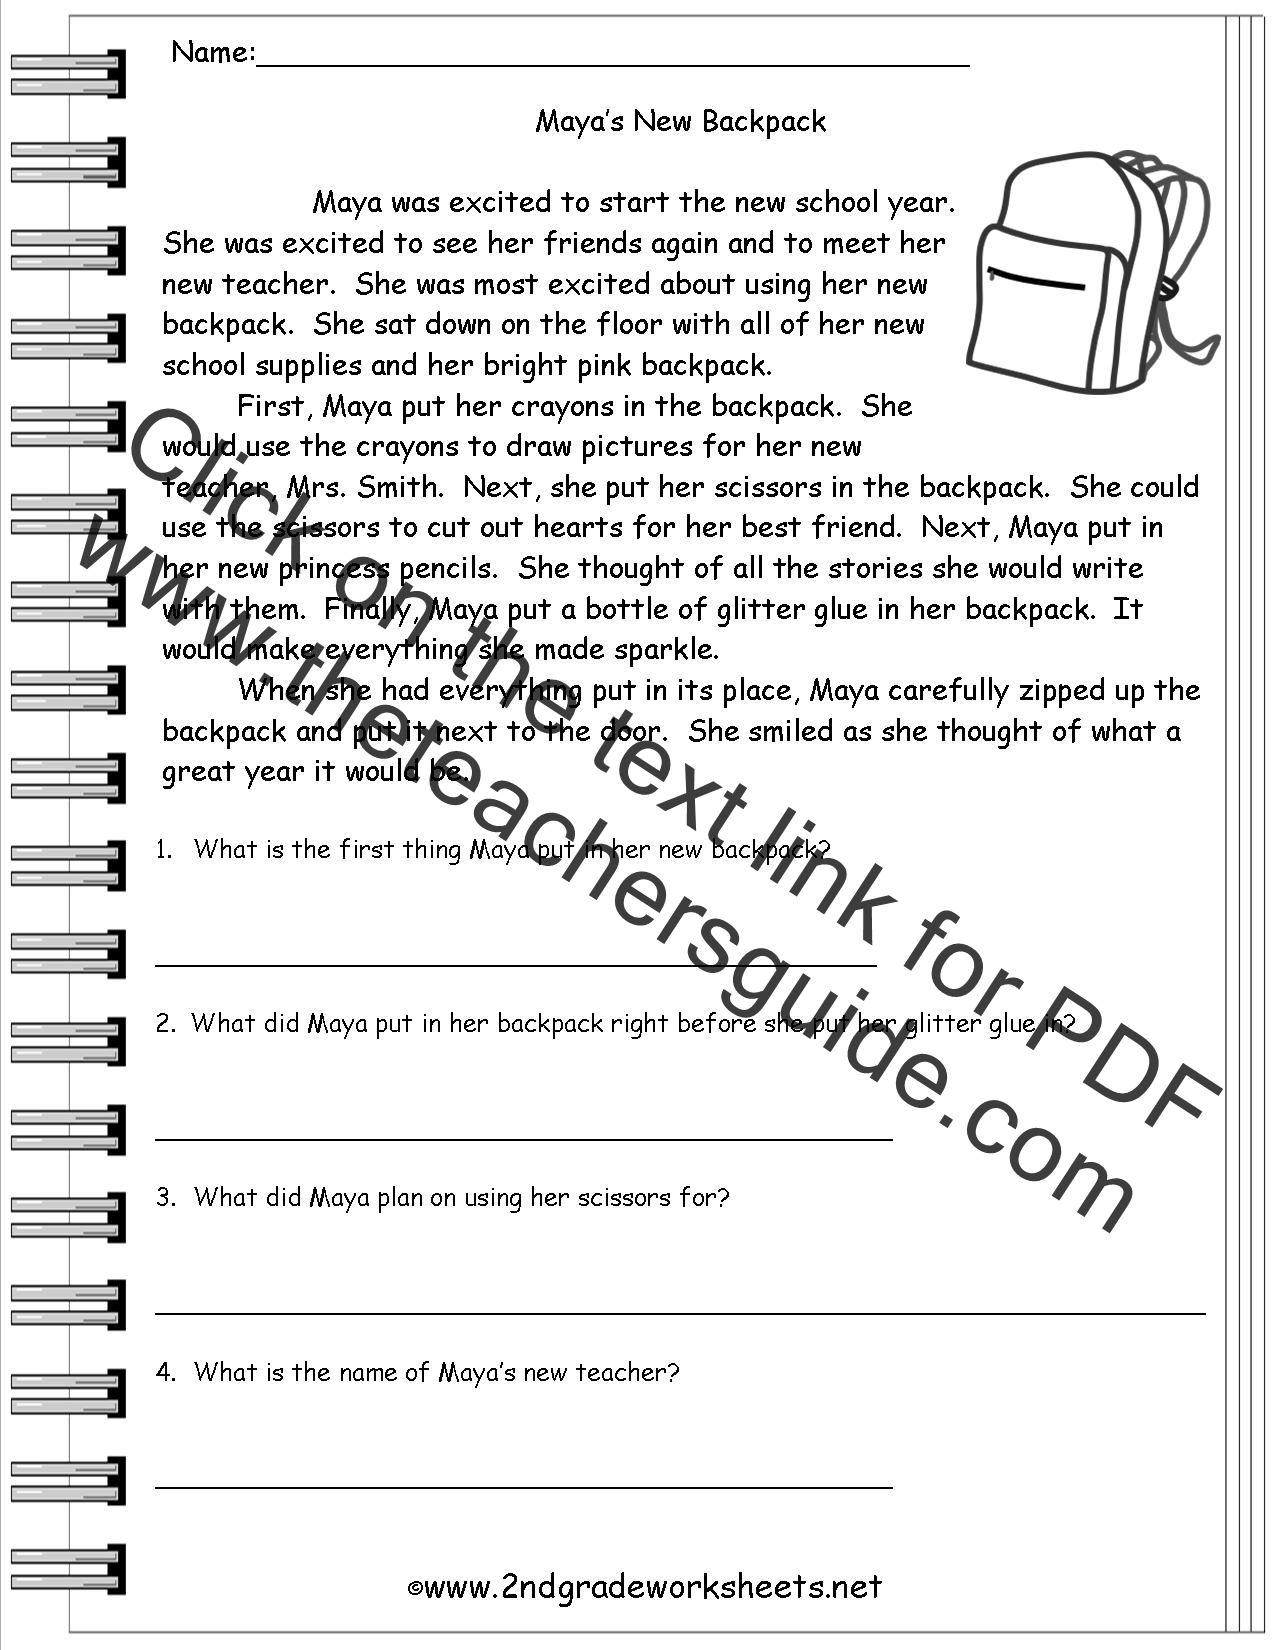 Worksheet Short Stories With Reading Comprehension Questions reading worksheeets literature worksheets